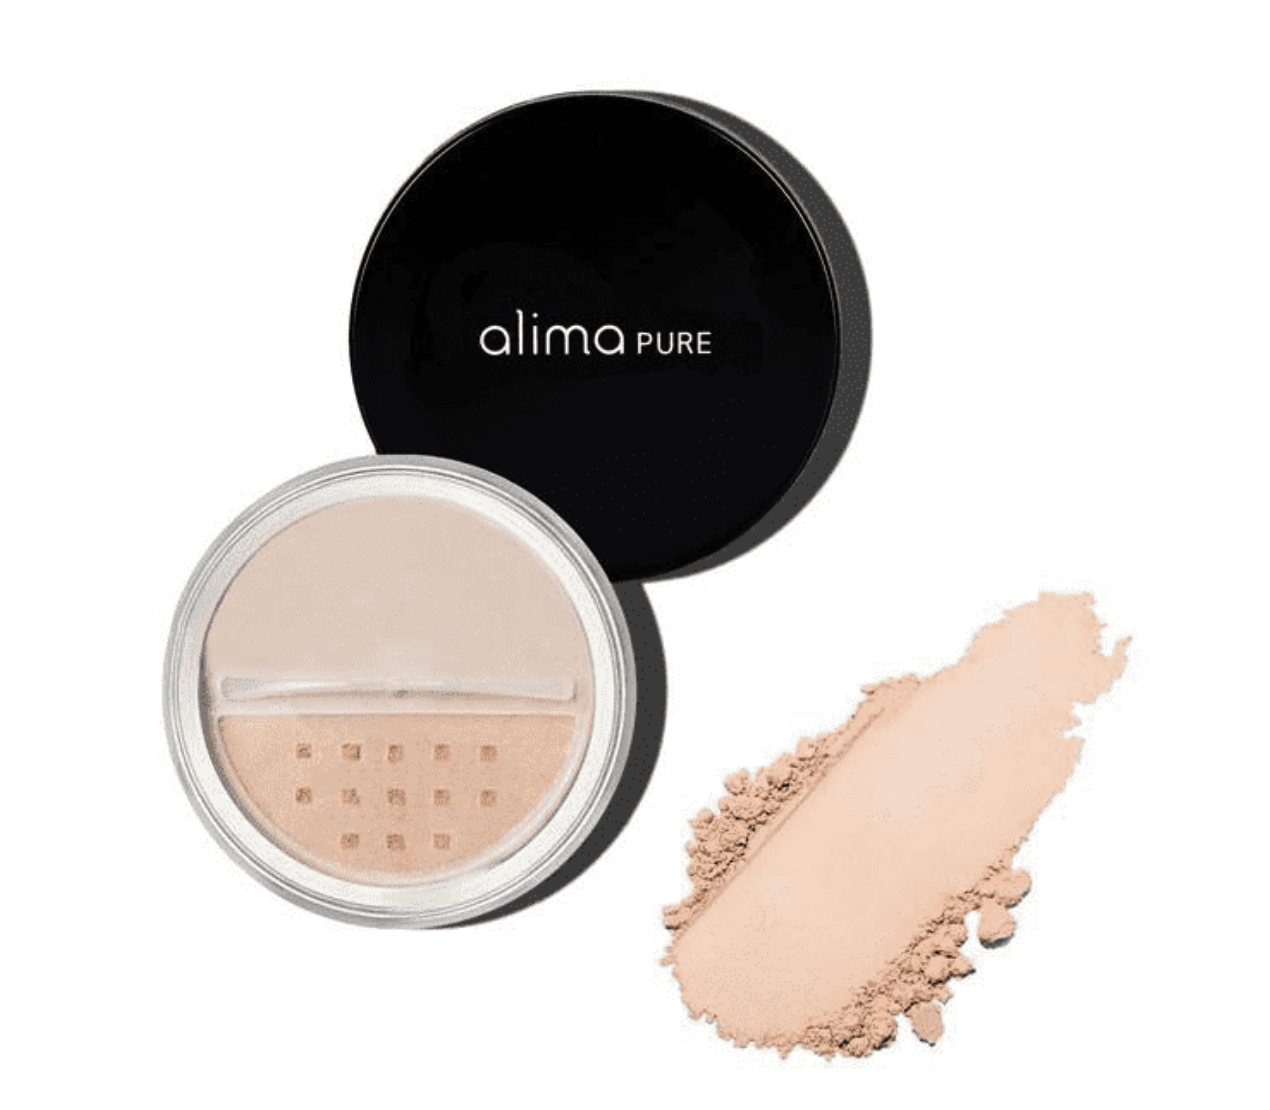 Alima Pure: Satin Matte Foundation